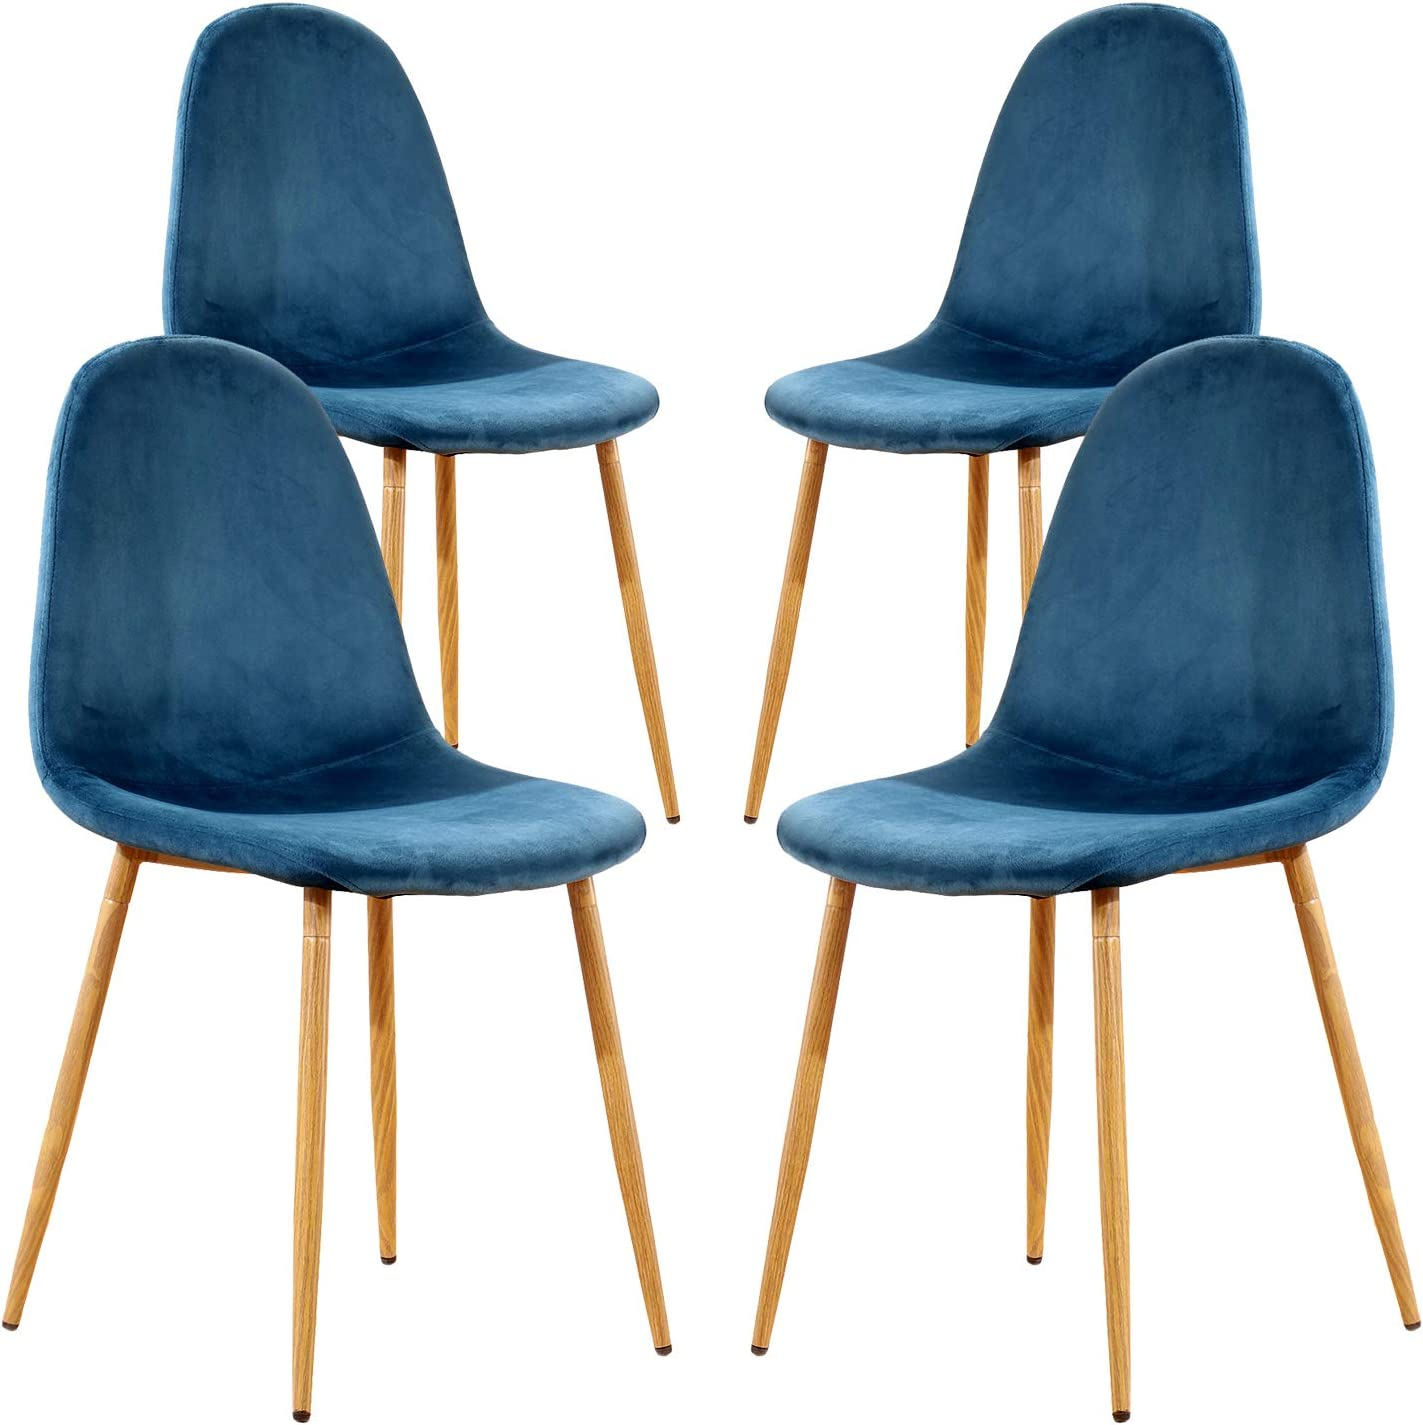 Teraves Dining Chairs Set of 4,Velvet Kitchen Seat Chair with Metal Legs for Home Lounge Living Room